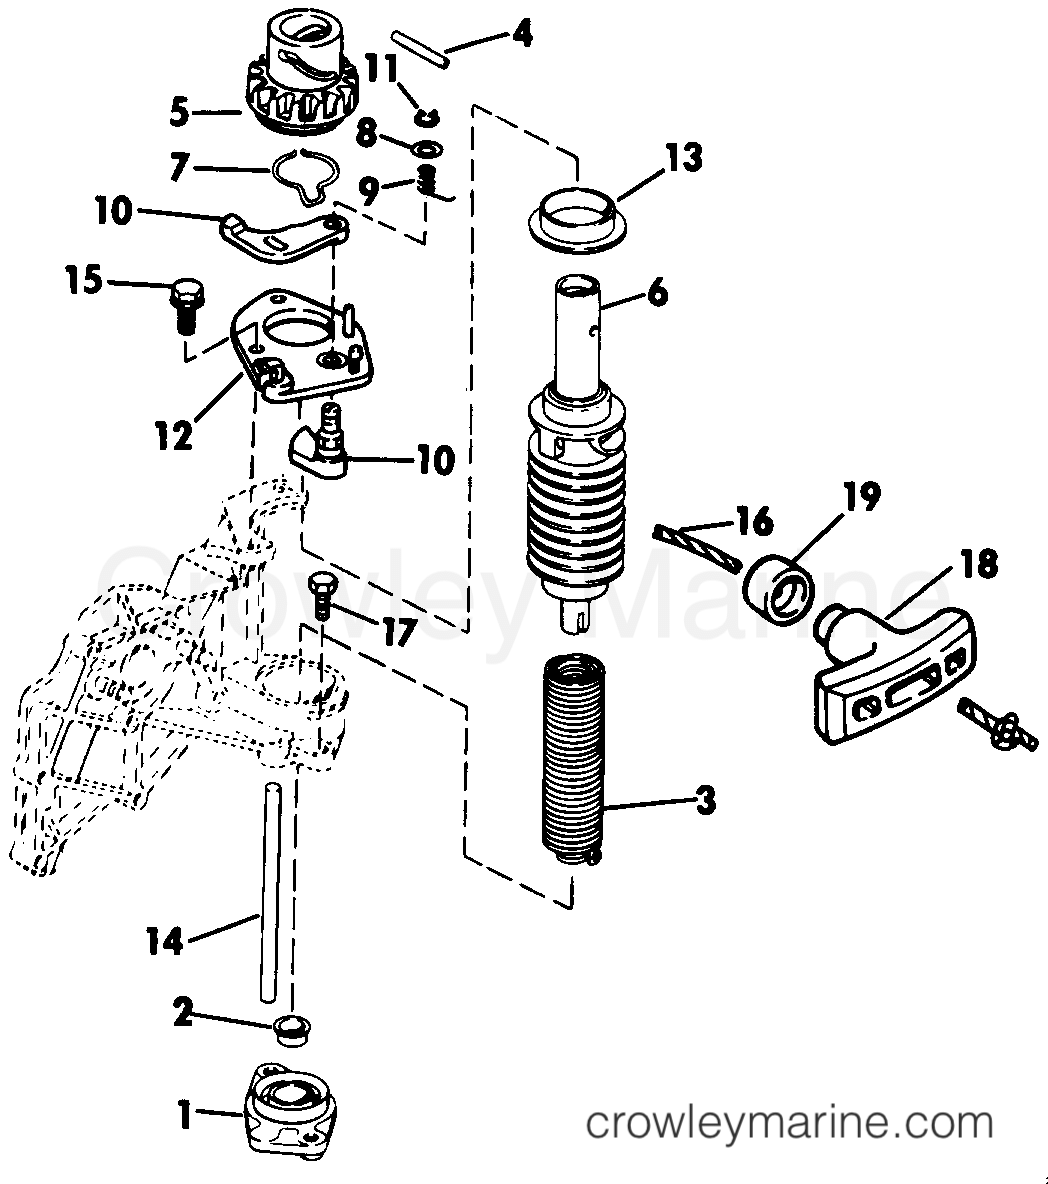 1985 Johnson Outboard Manual